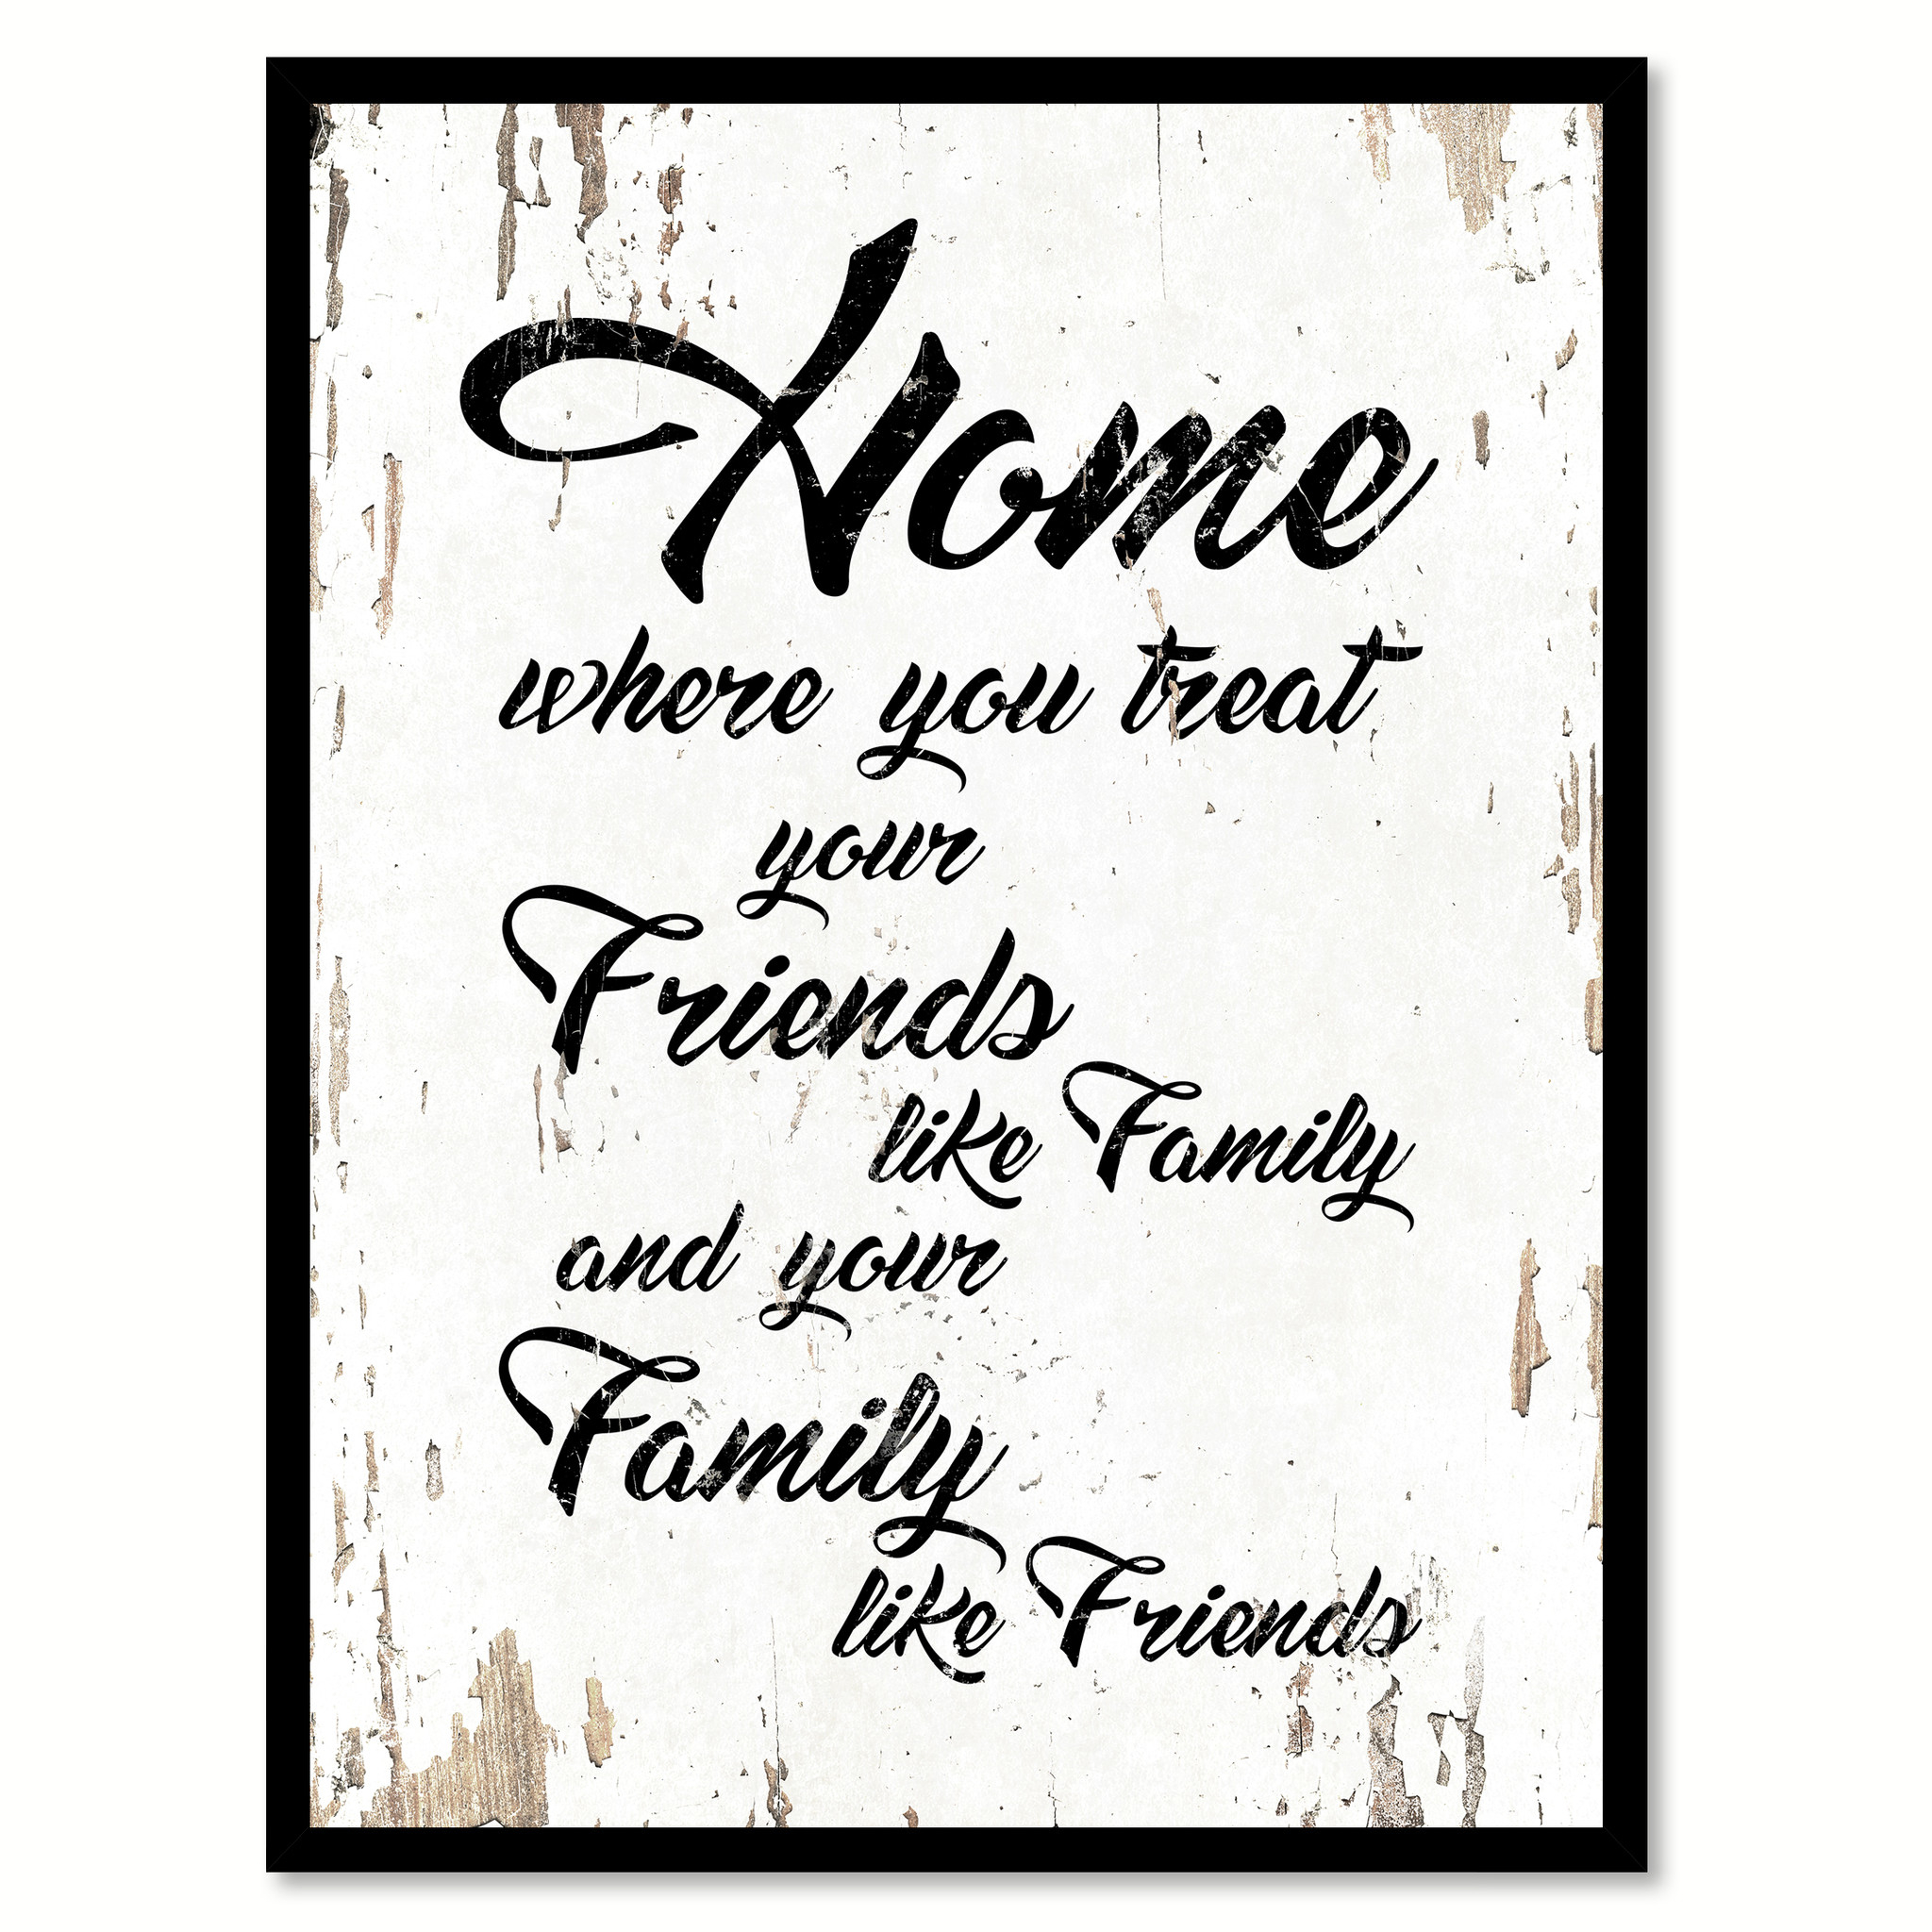 "Home Where You Treat Your Friends Like Family Quote Saying Canvas Print with Picture Frame Home Decor Wall Art Gift Ideas 111754 - 7""x9\"""